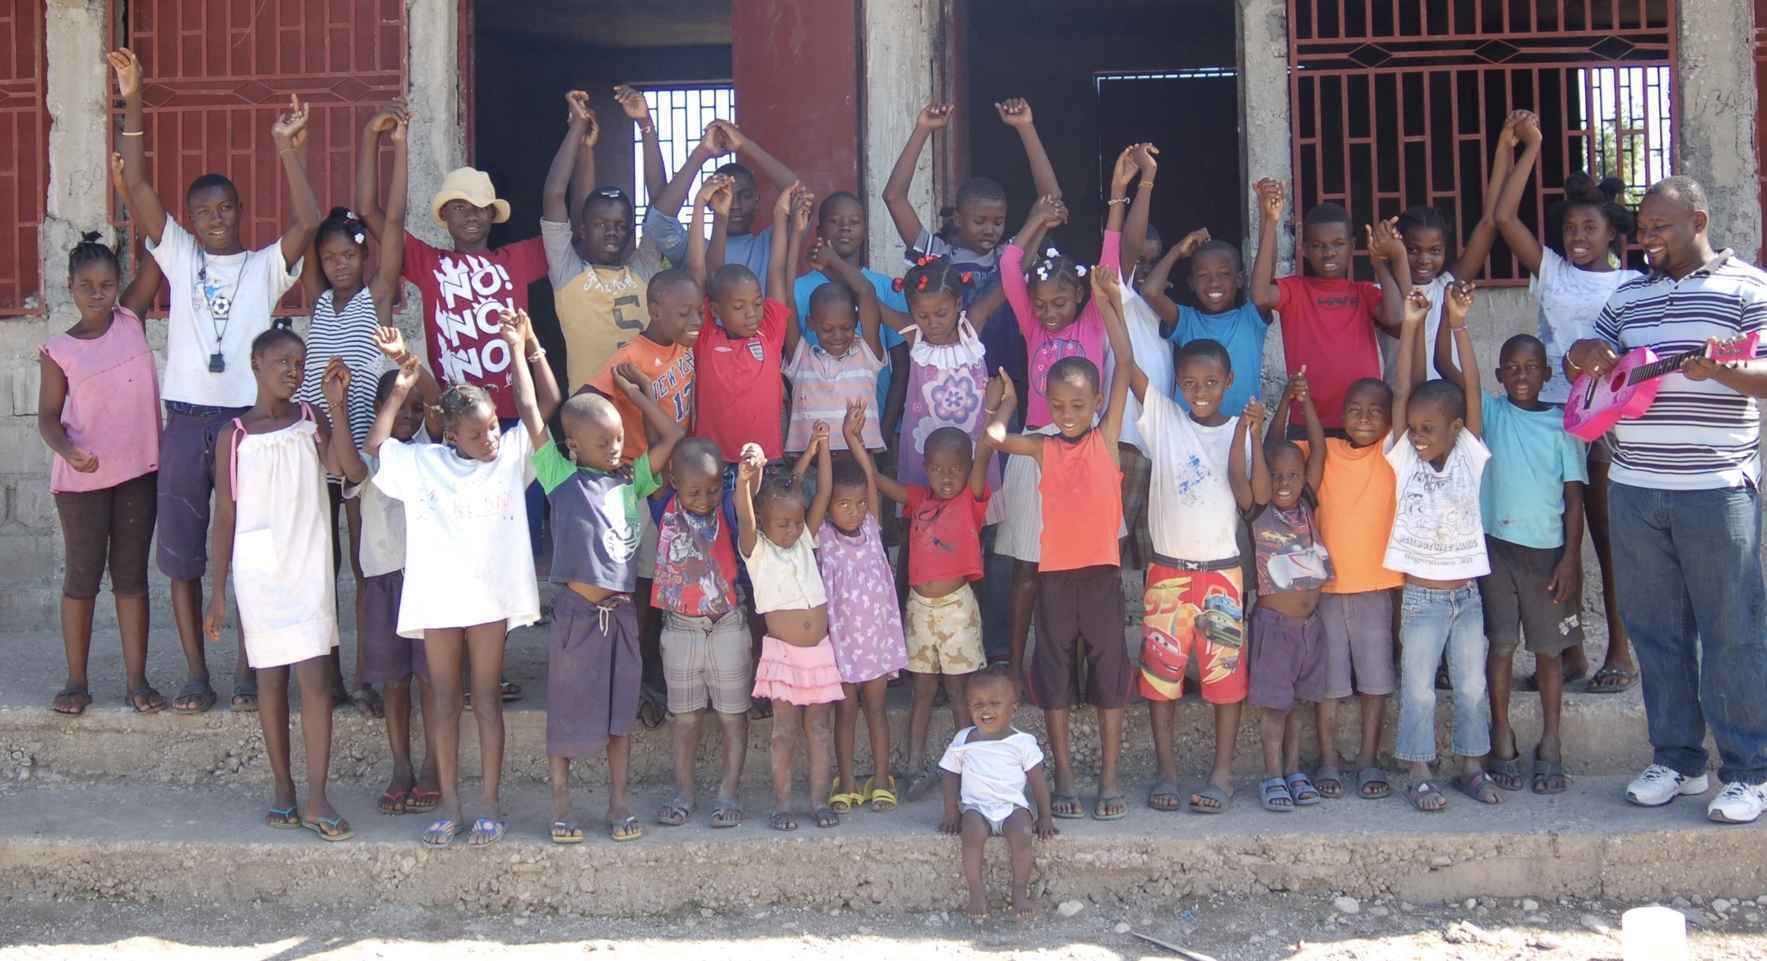 Help us provide Home, Education, Love and Opportunity to orphaned and abandoned children in Haiti image